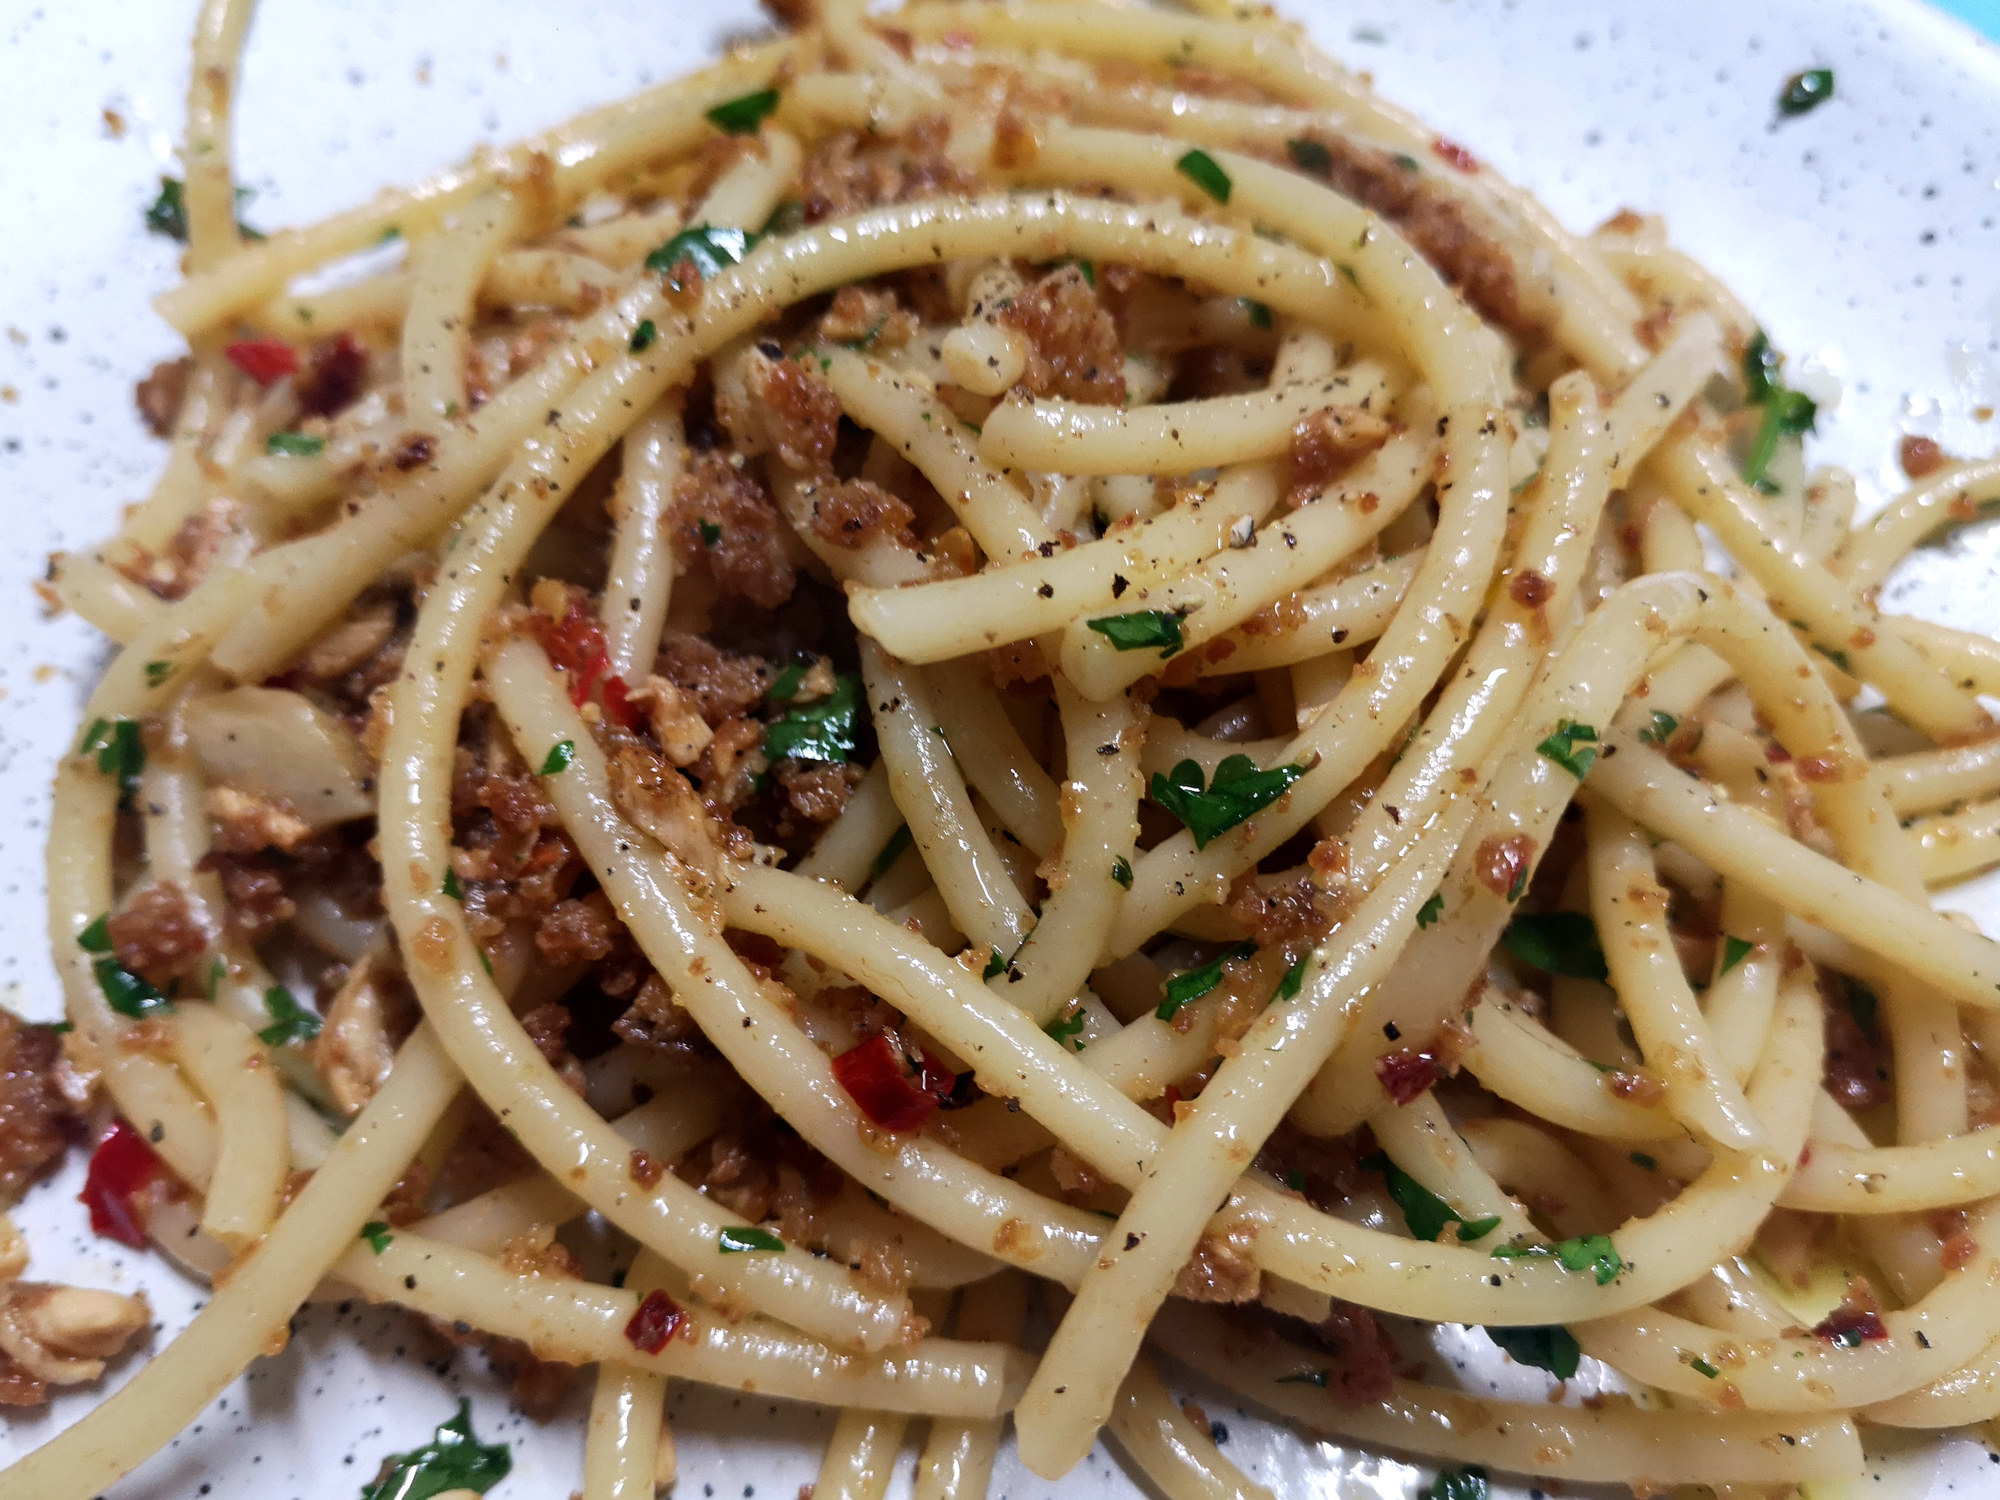 A plate of bucatini with anchovies